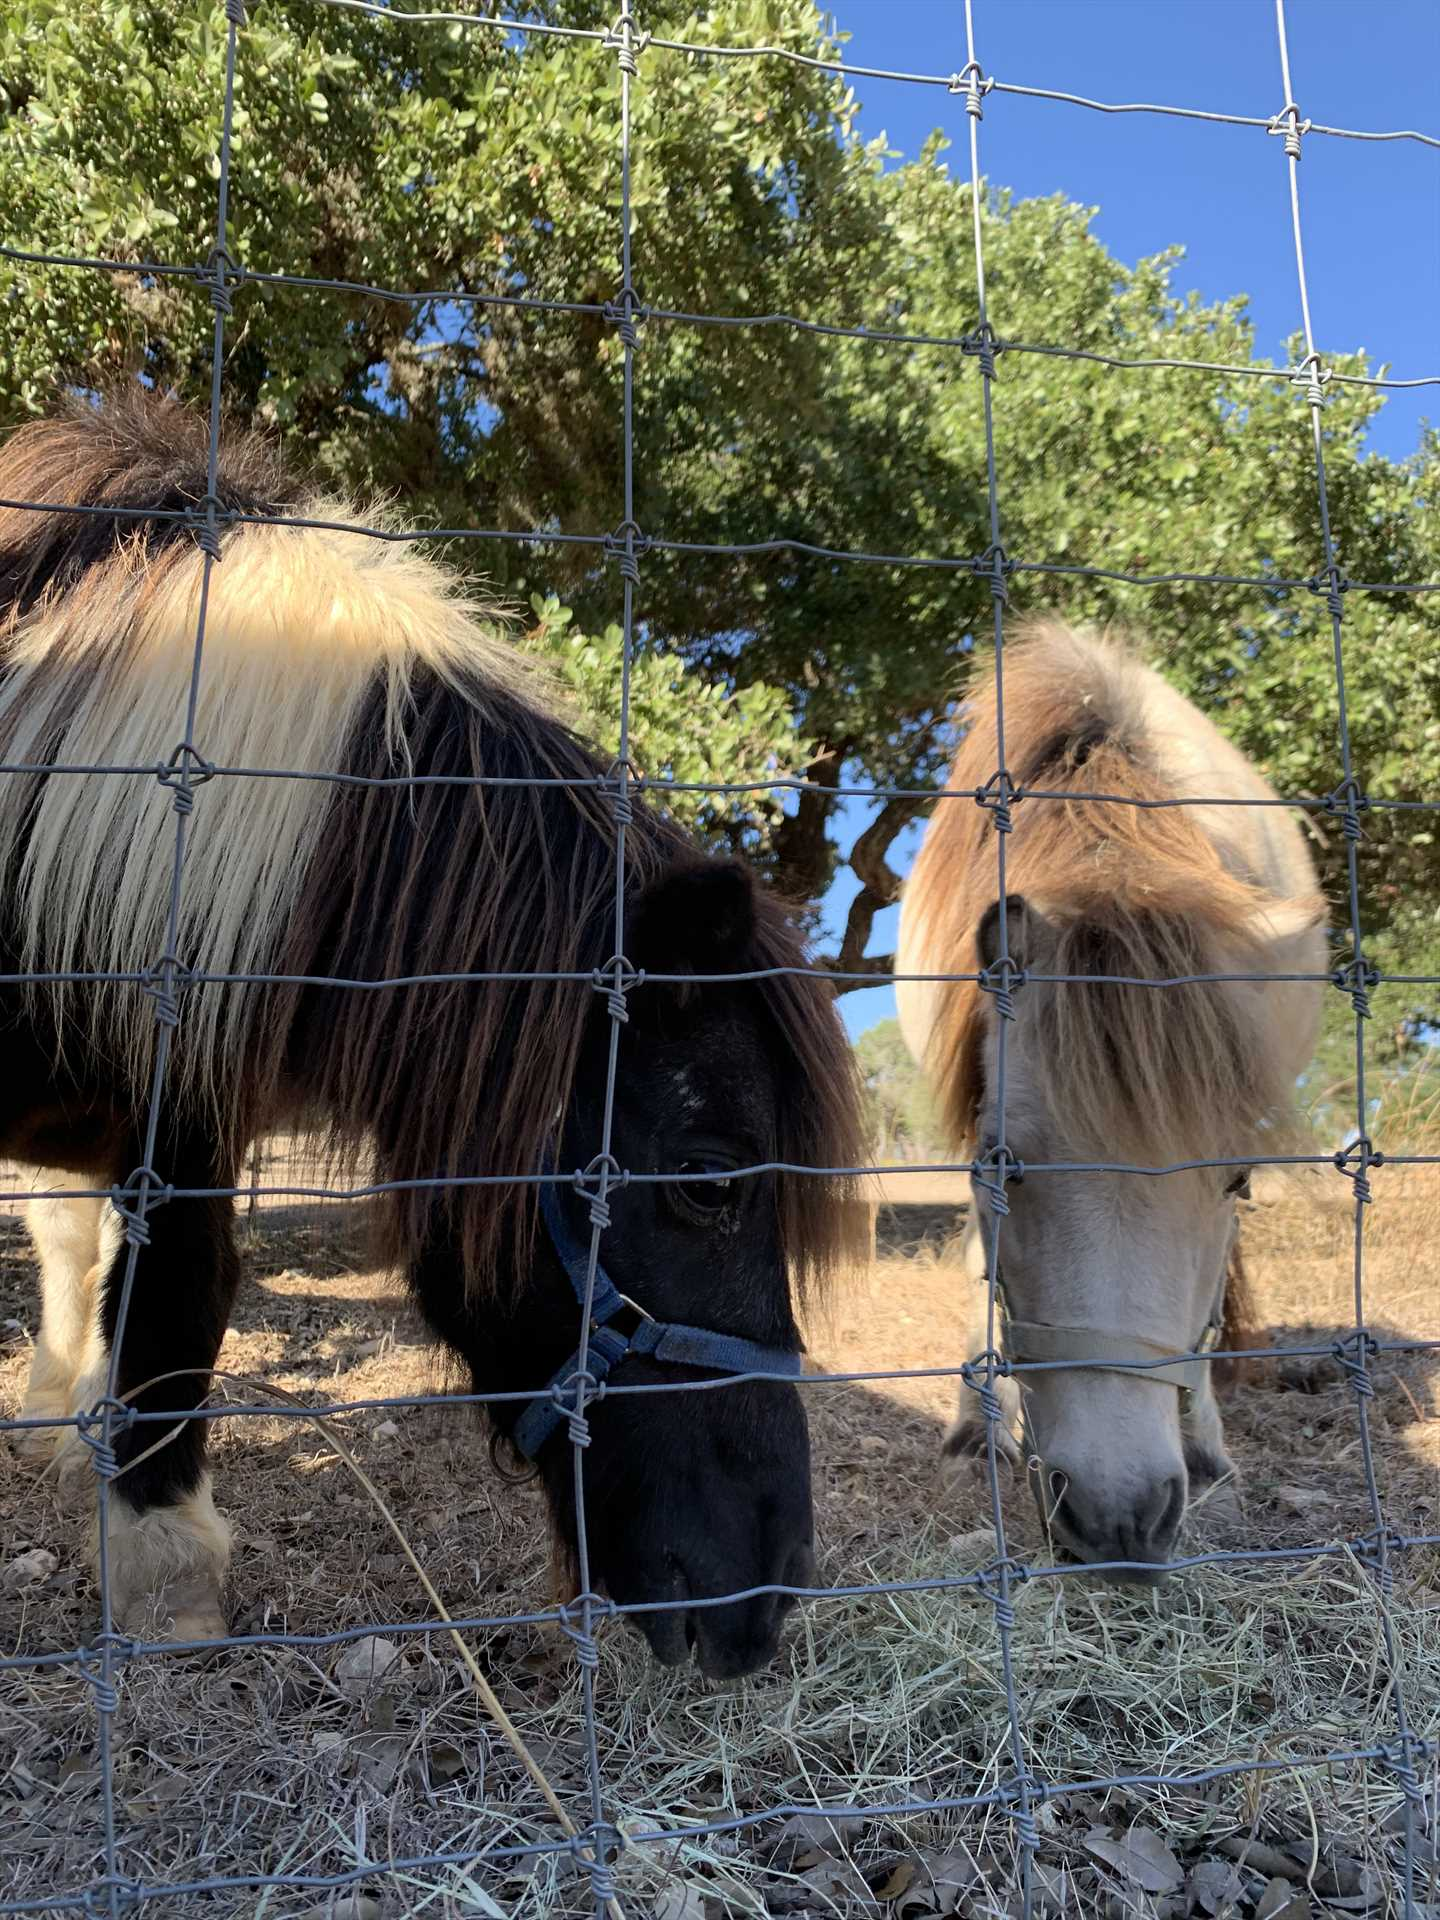 Feel free to say hello to the friendly miniature (and regular-sized) horses at the ranch!